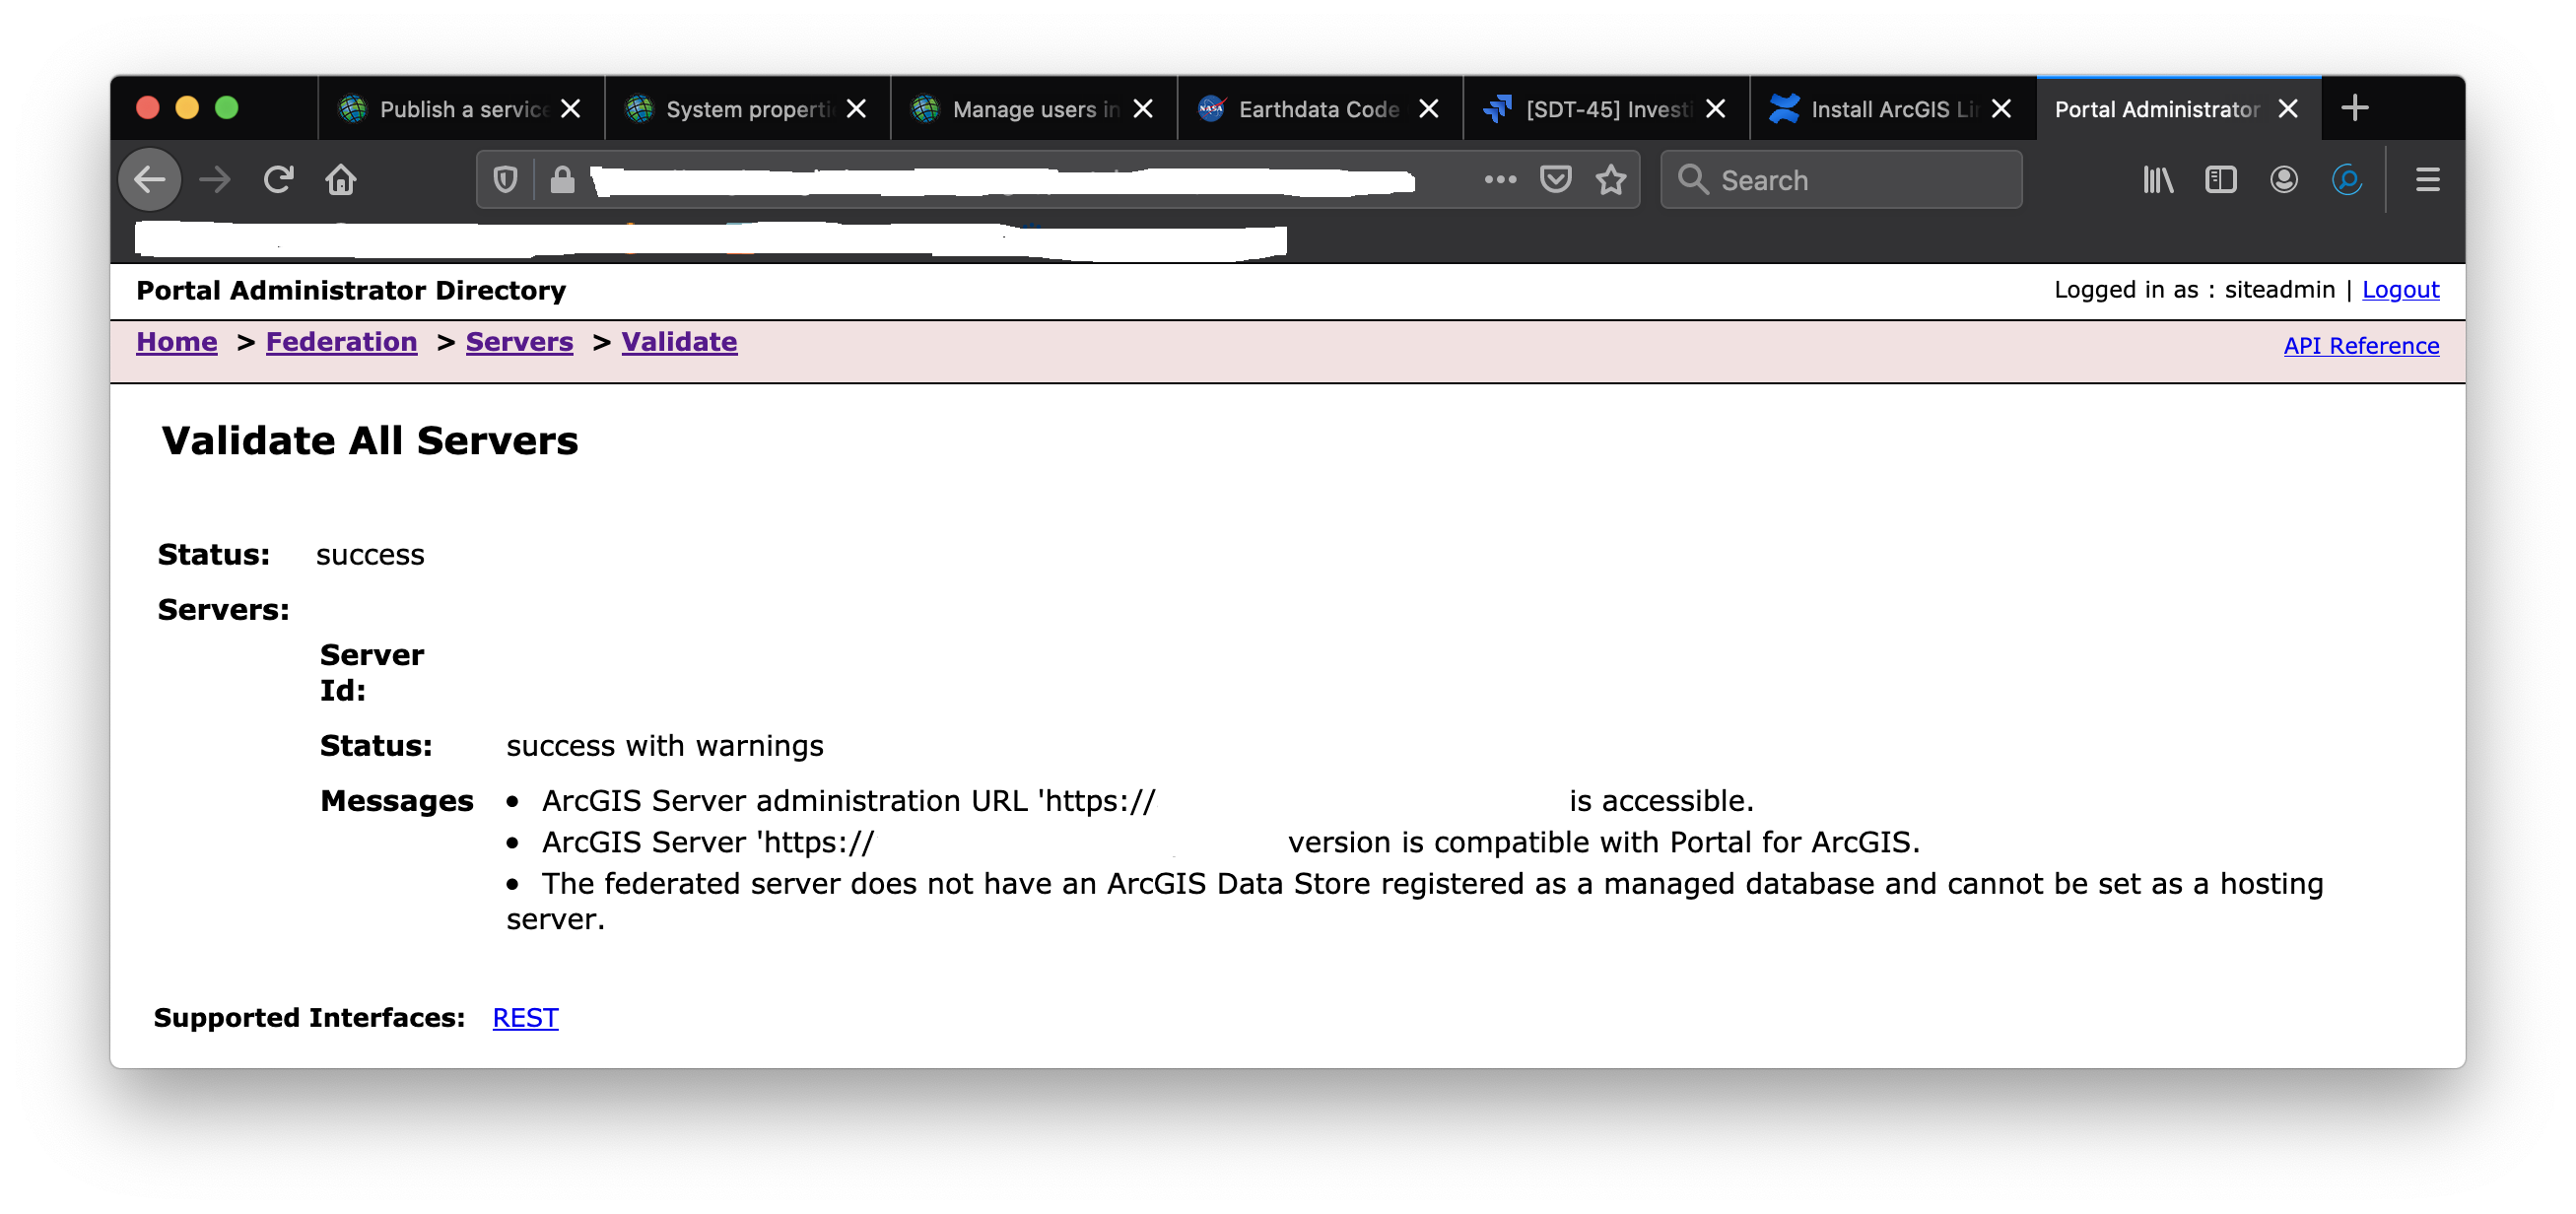 Federation Data Store Is Not Registered